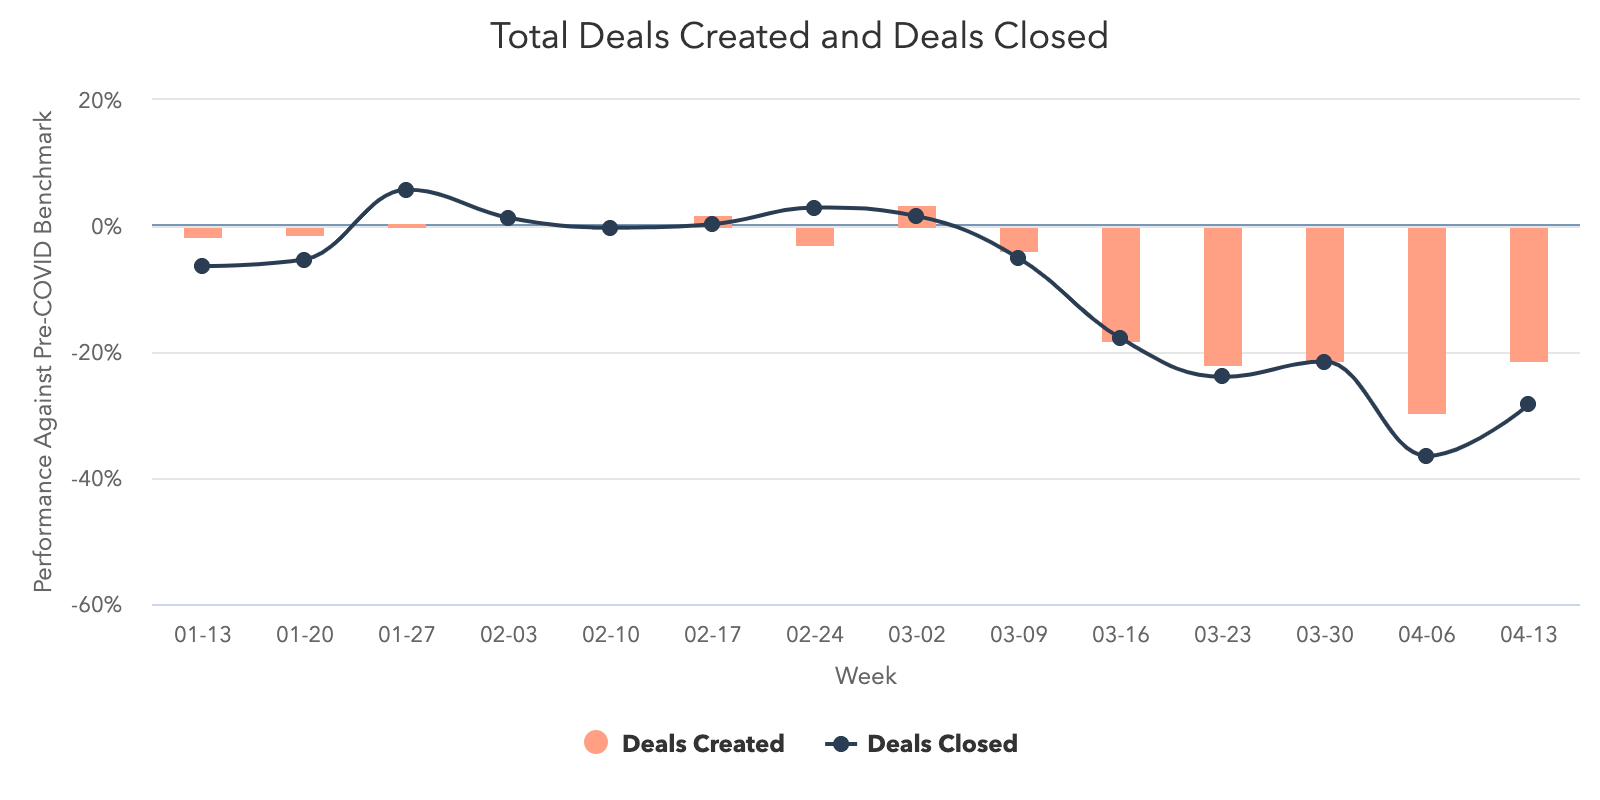 Deals Created vs Deals Closed